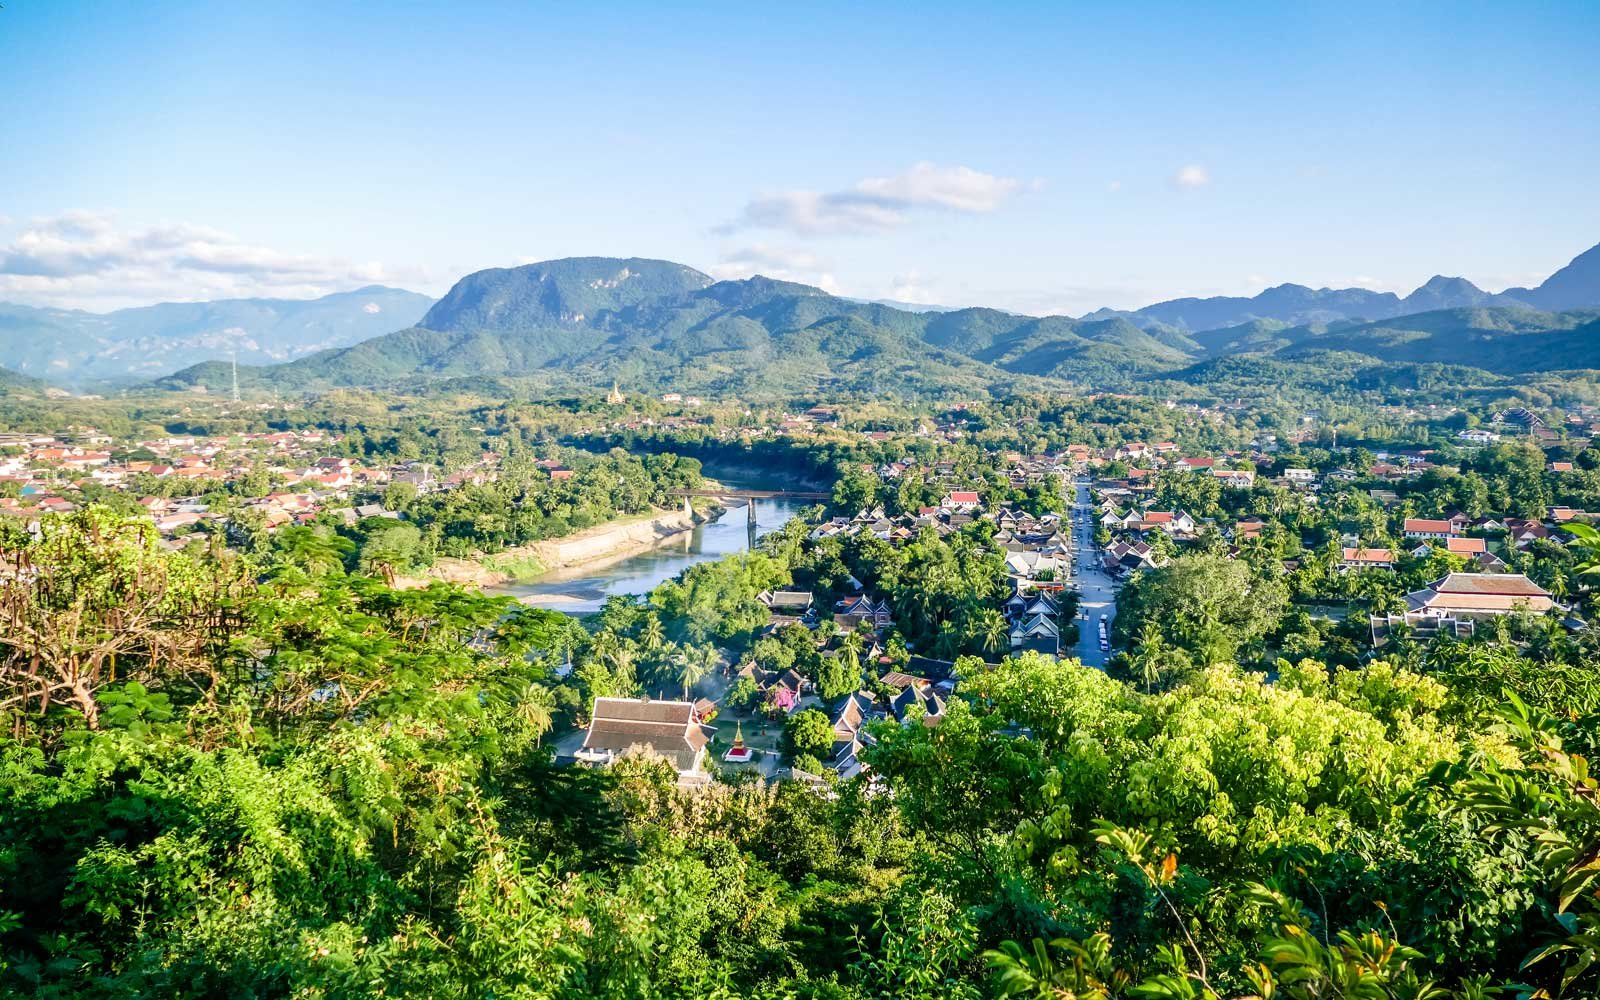 View of the Luang Prabang, Laos, skyline